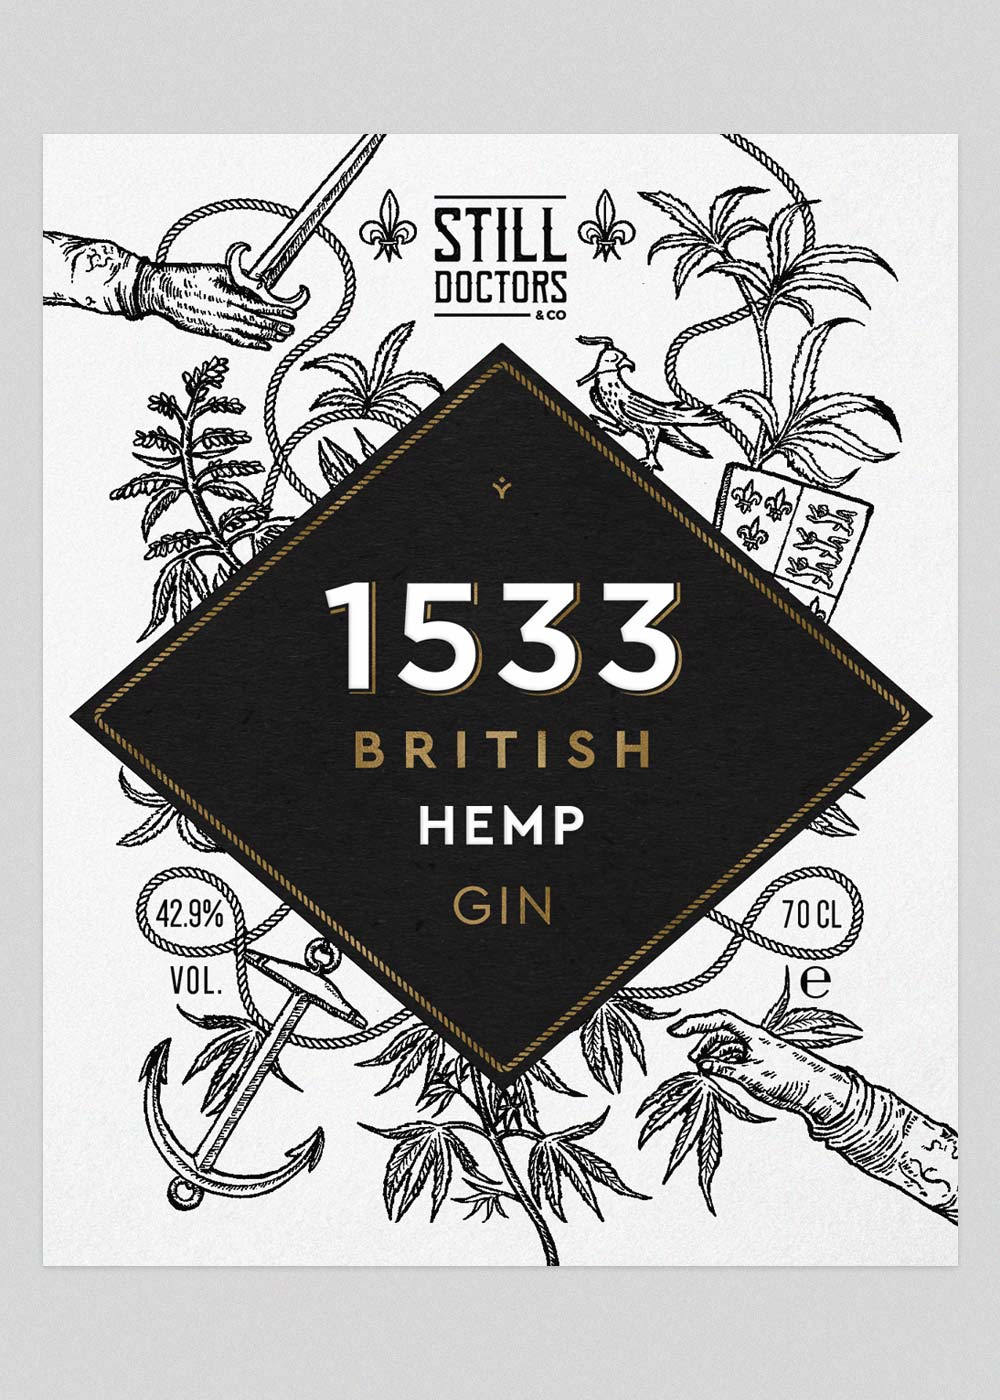 Gin Label design & branding-1533-Hemp Gin Wild-Bear-Designs-pic3